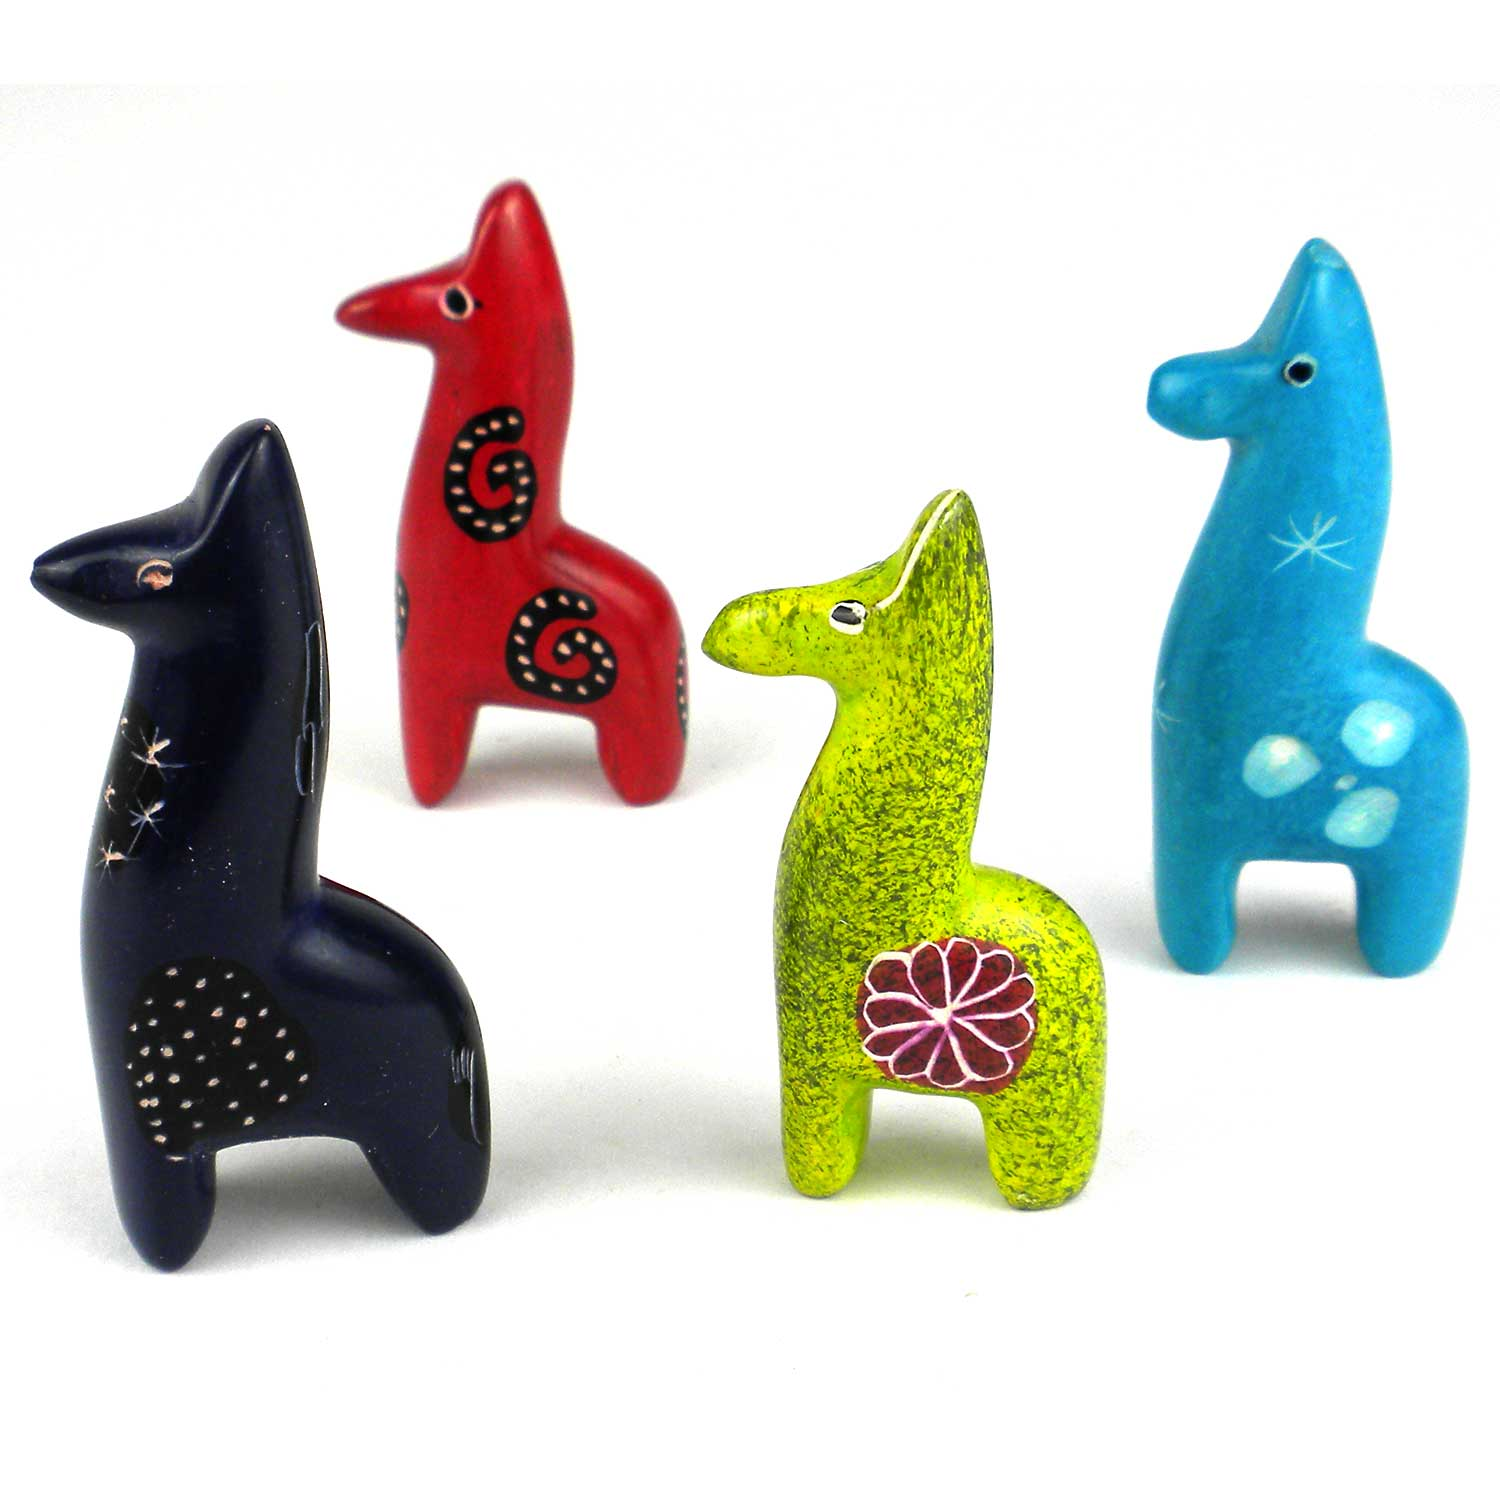 Soapstone Giraffes, Set of 5 - Tiny 1 -2 inches